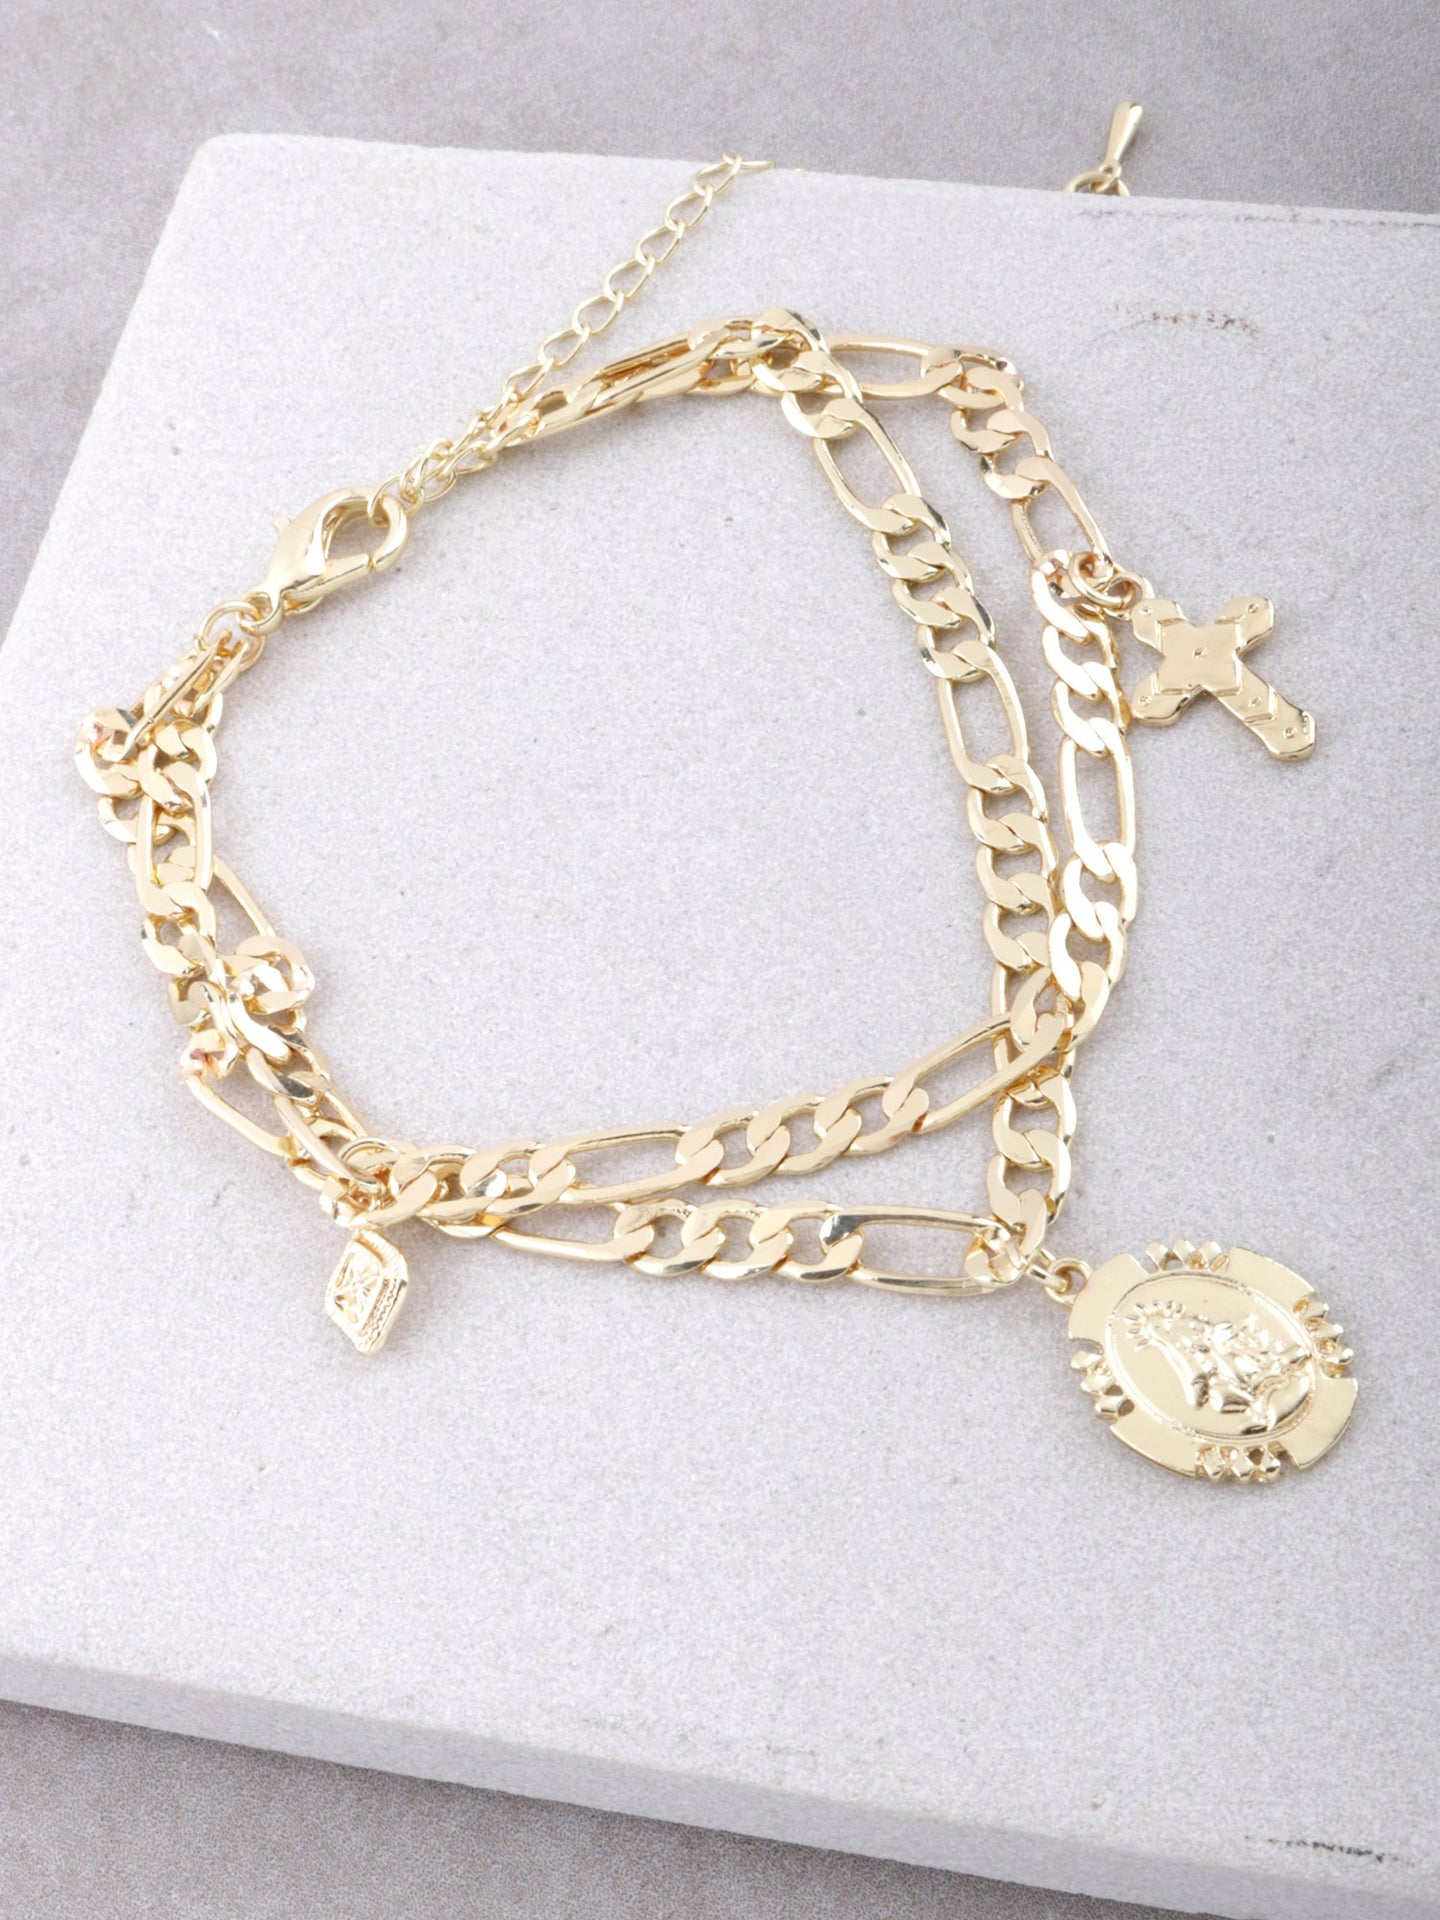 Prayer Circle Chain Bracelet Anarchy Street Gold